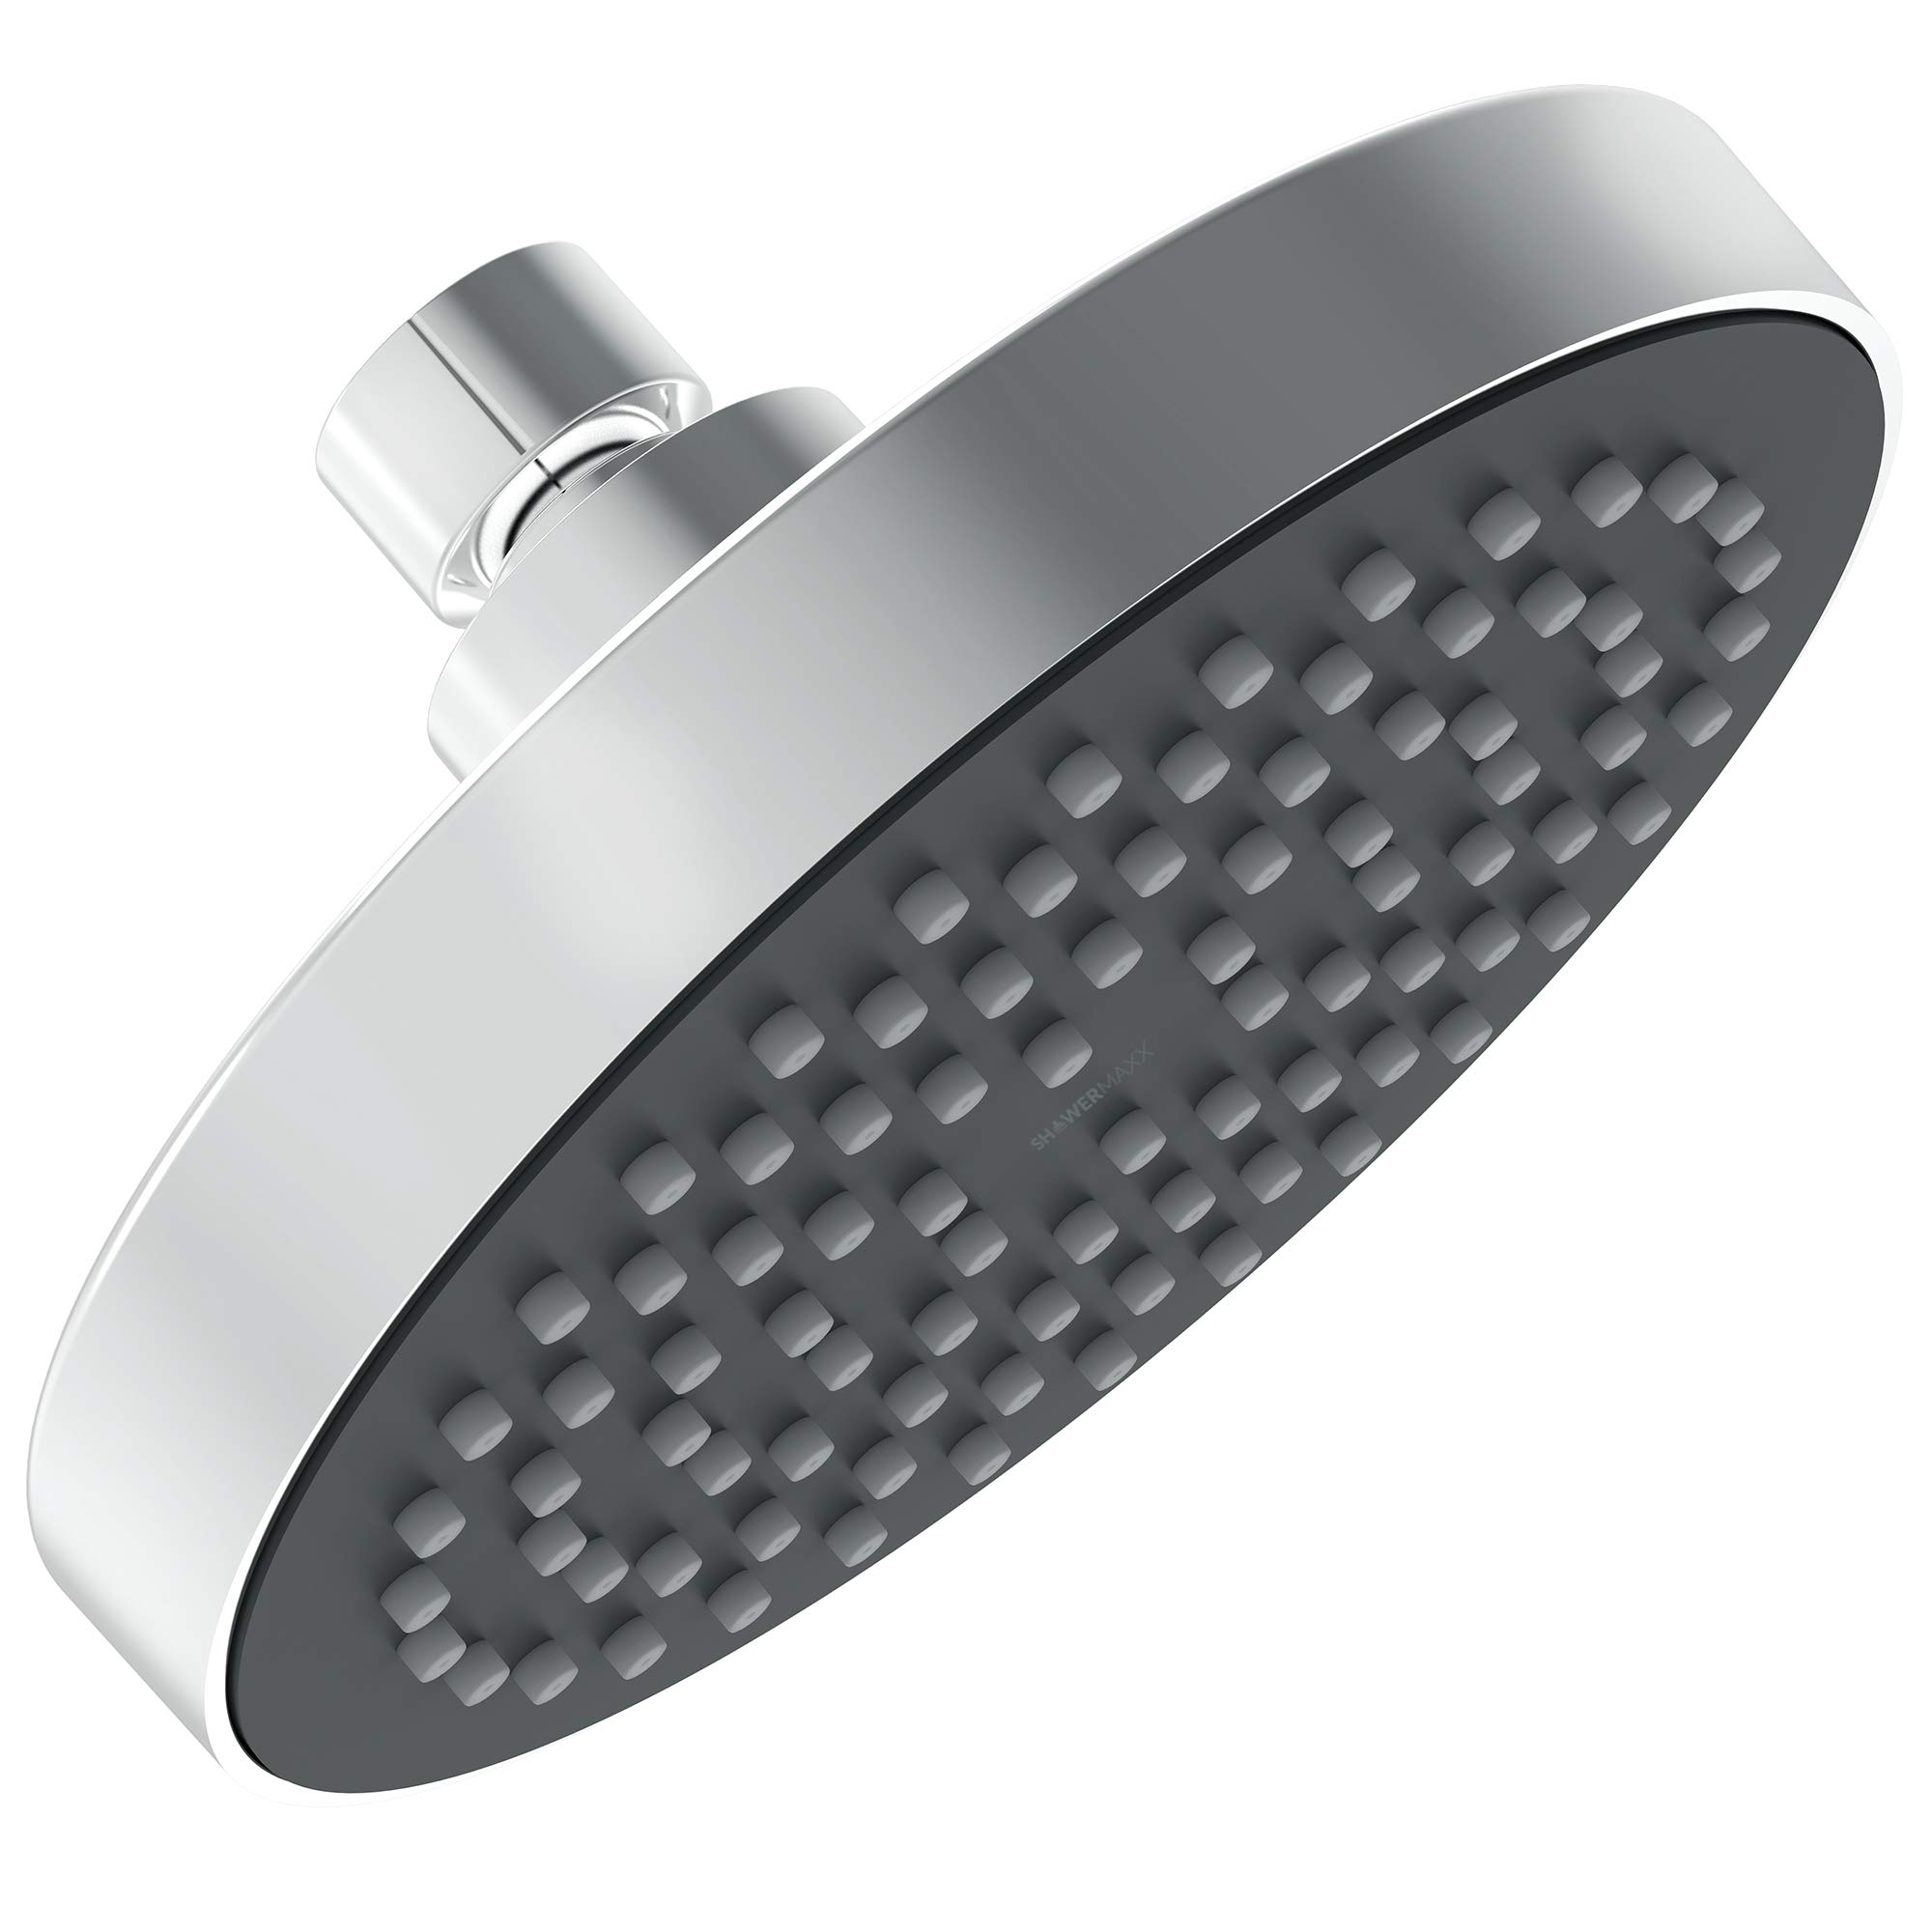 ShowerMaxx | Fixed Rainfall Shower Head with High Pressure Water Flow in Polished Chrome Finish | Round 6inch with Rainshower Jets | Luxury Hotel Spa Rainhead | 2.5 GPM High-Flow Waterfall Showerhead